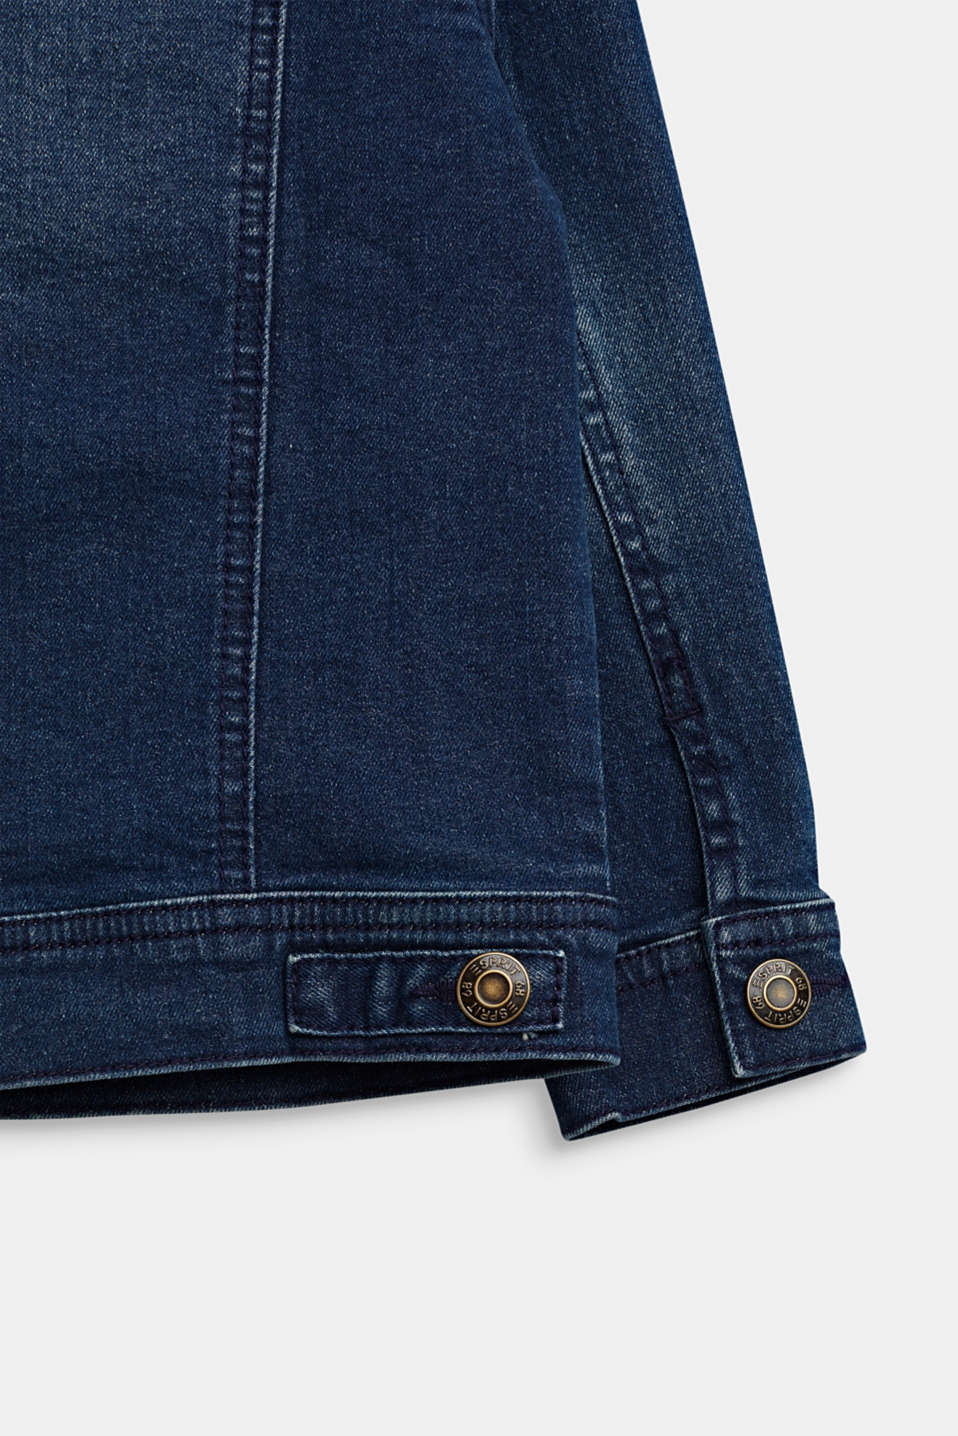 Stretch denim jacket, DARK INDIGO DE, detail image number 3